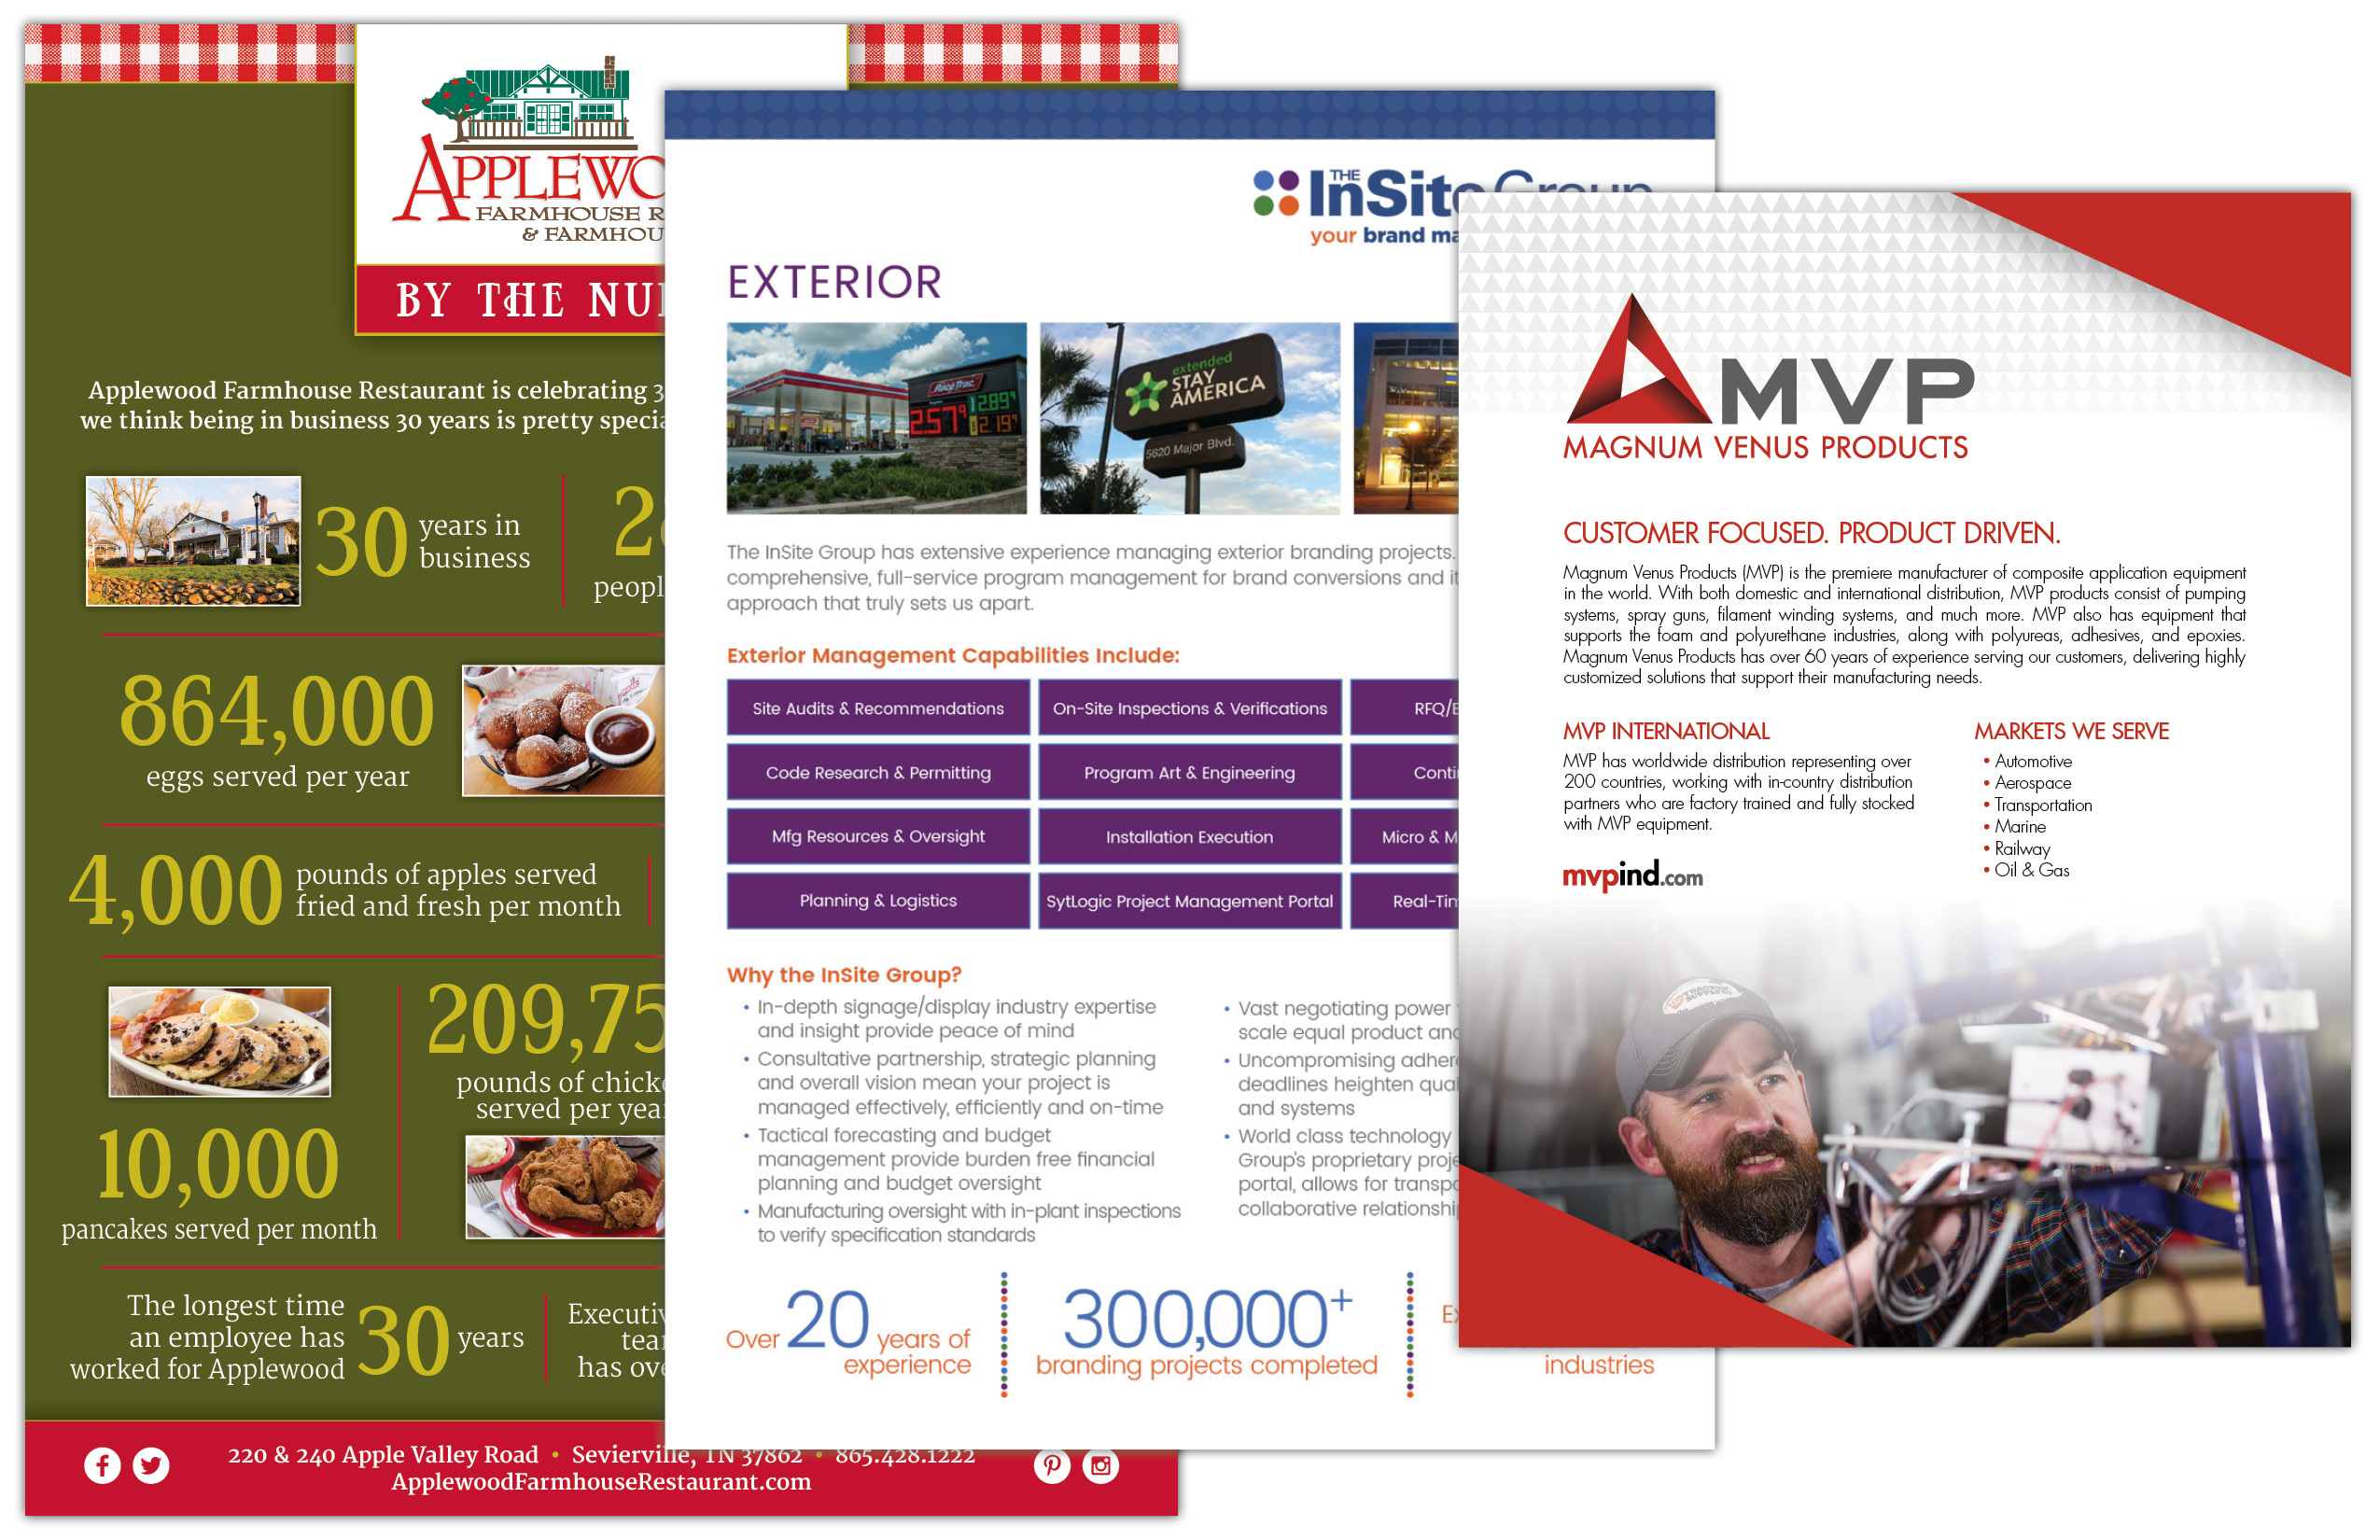 CMOco develops well thought out brochures and articles with engaging content and graphics